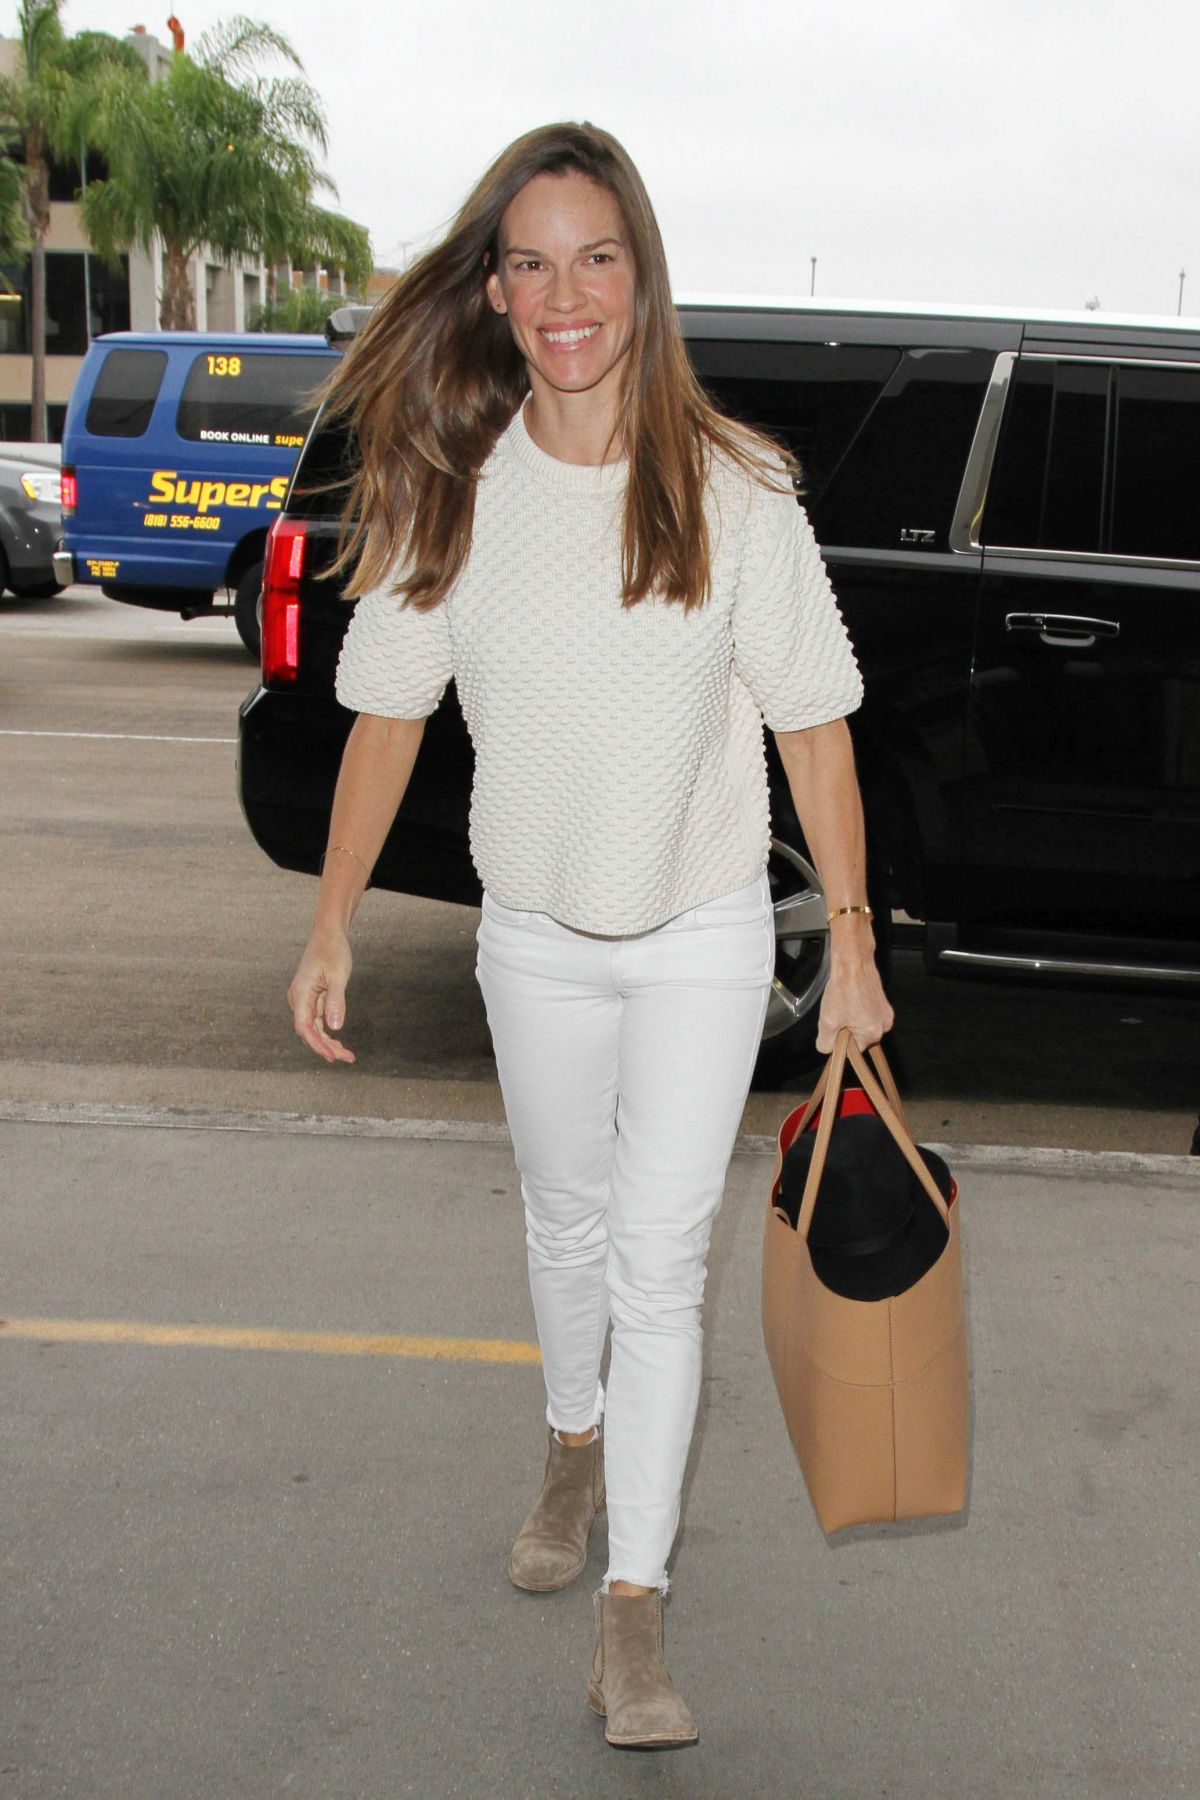 HILARY SWANK Arrives at LAX Airport in Los Angeles 10/16/2015